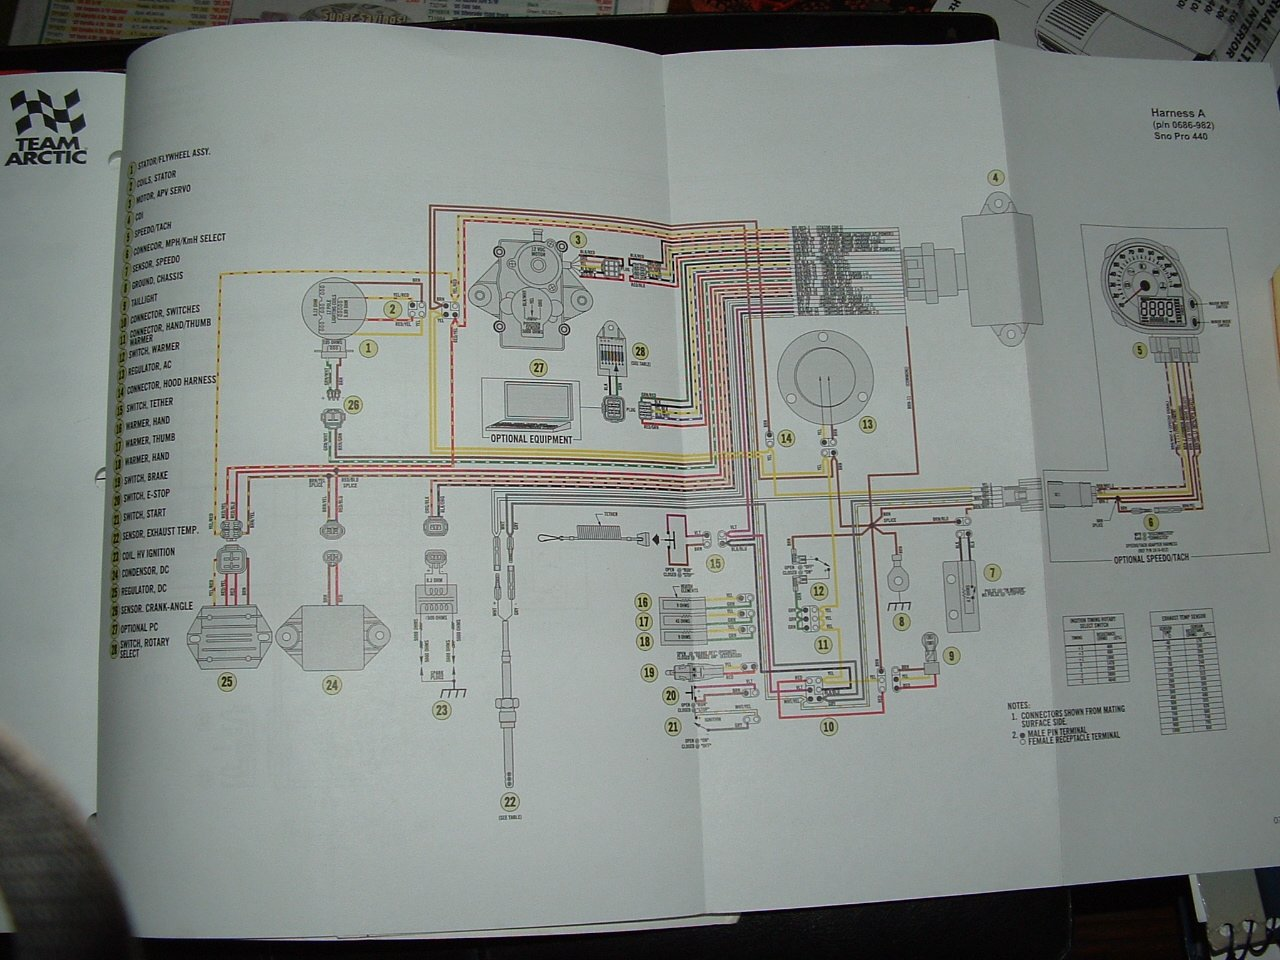 185155d1264109008 03 f7 efi electrical problem urgent 440_sno_pro_wireing_diagram 03 f7 efi electrical problem urgent arcticchat com arctic cat snowmobile voltage regulator wiring diagram at gsmx.co